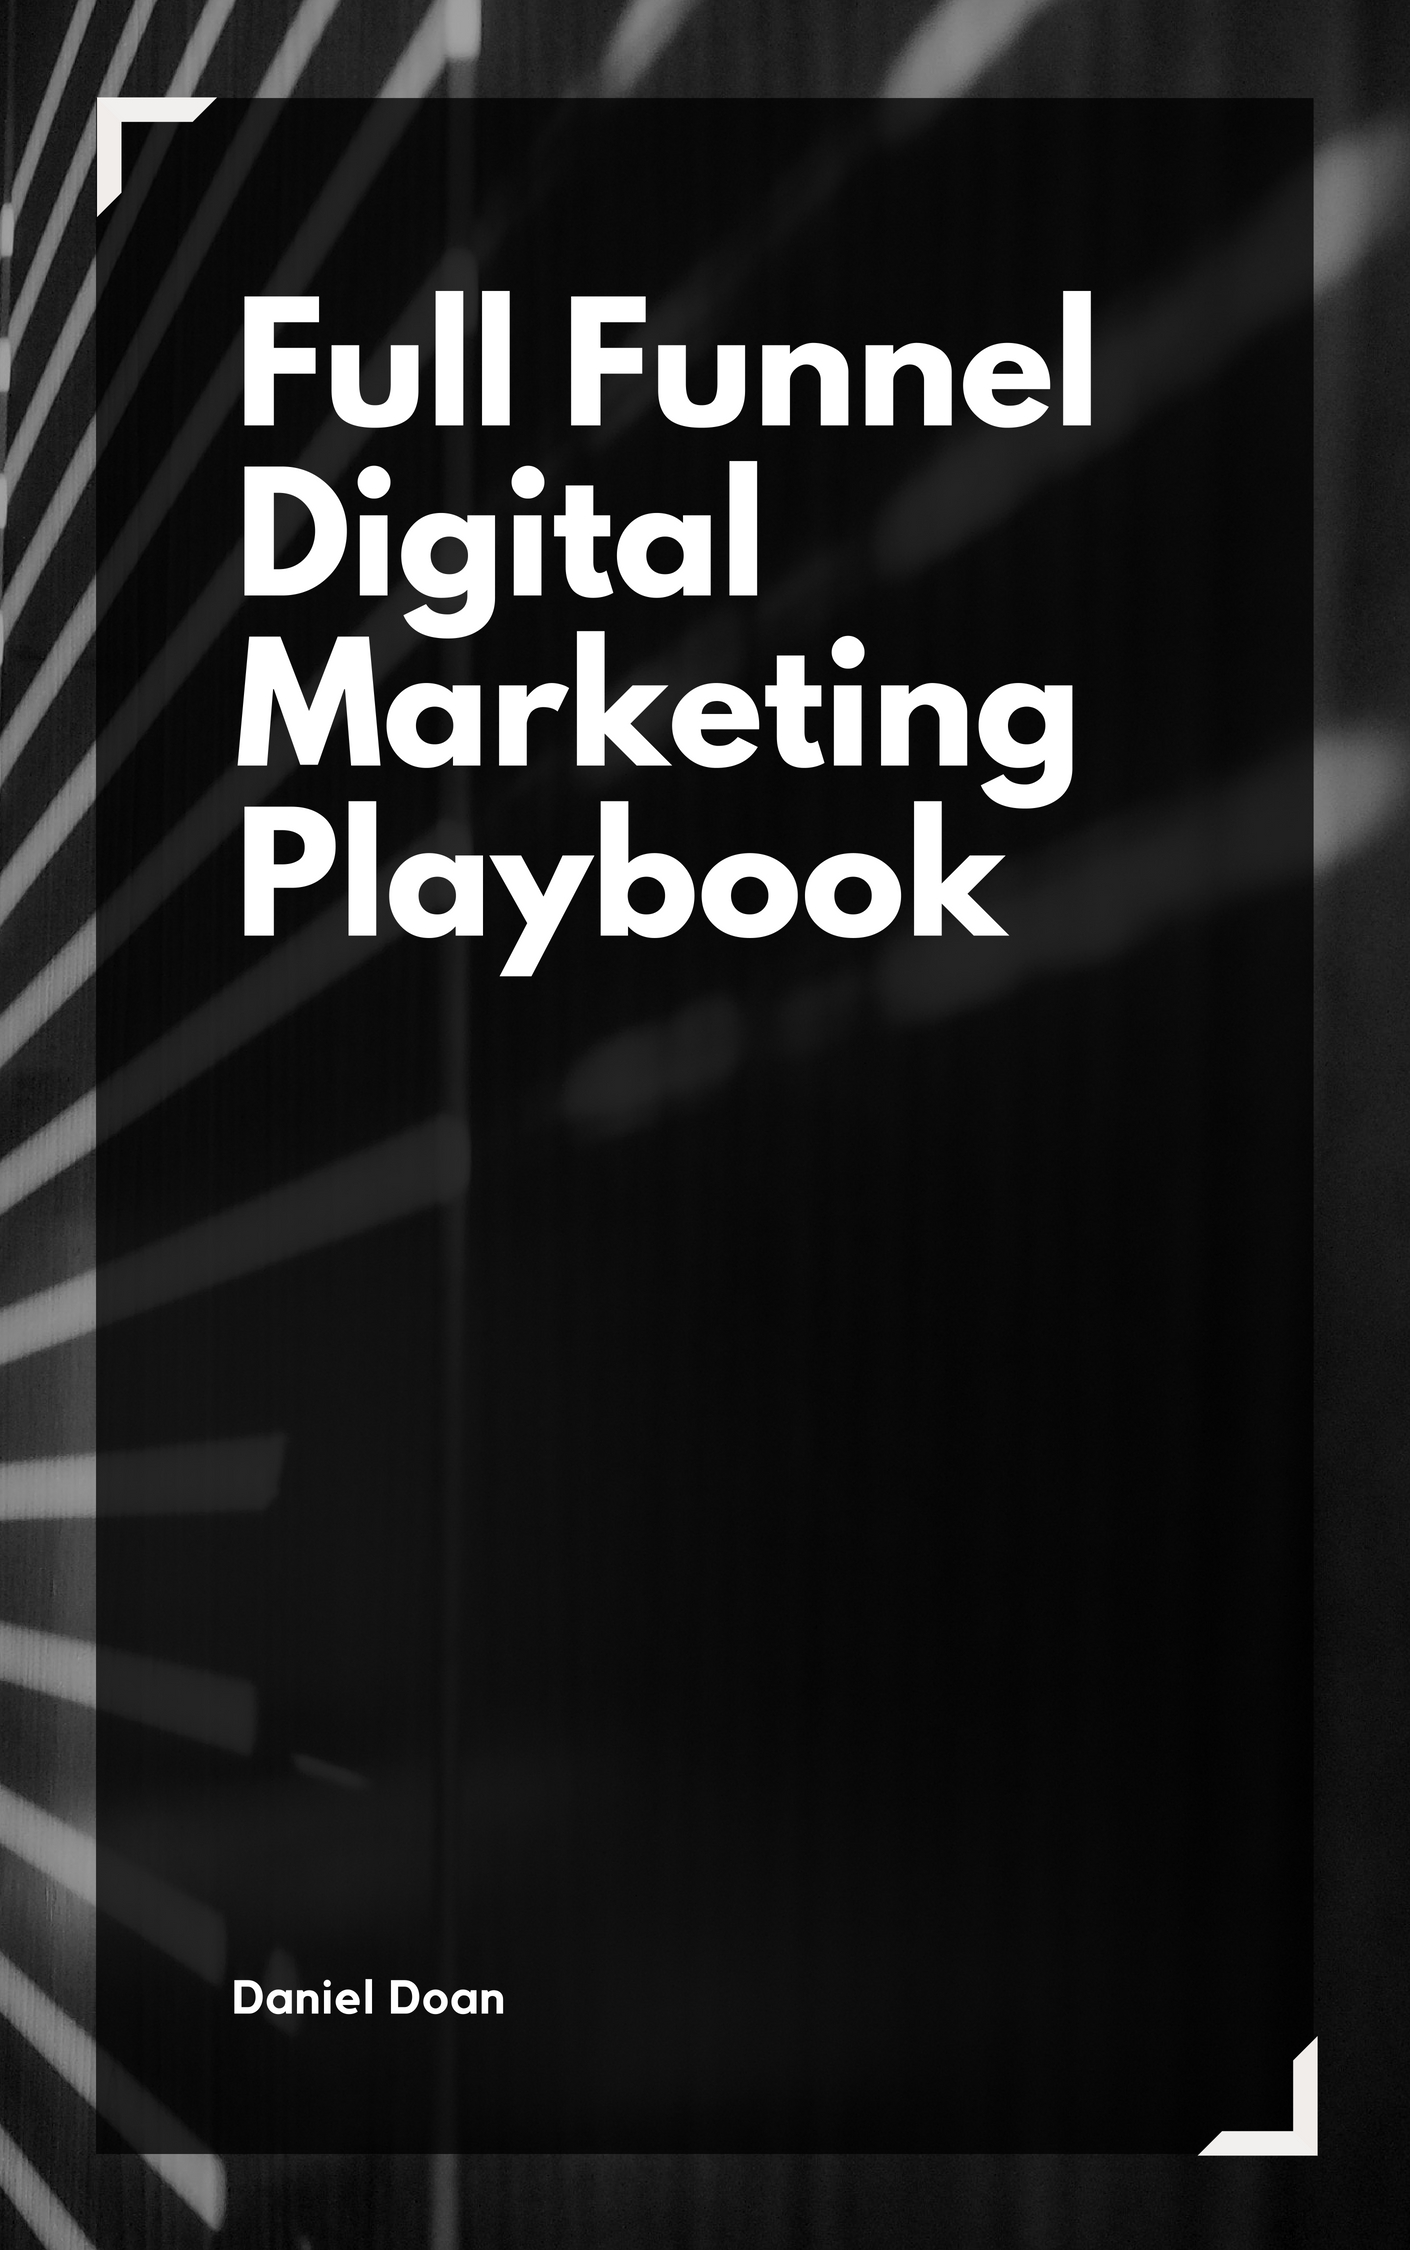 Full Funnel Growth Marketing Playbook.jpg